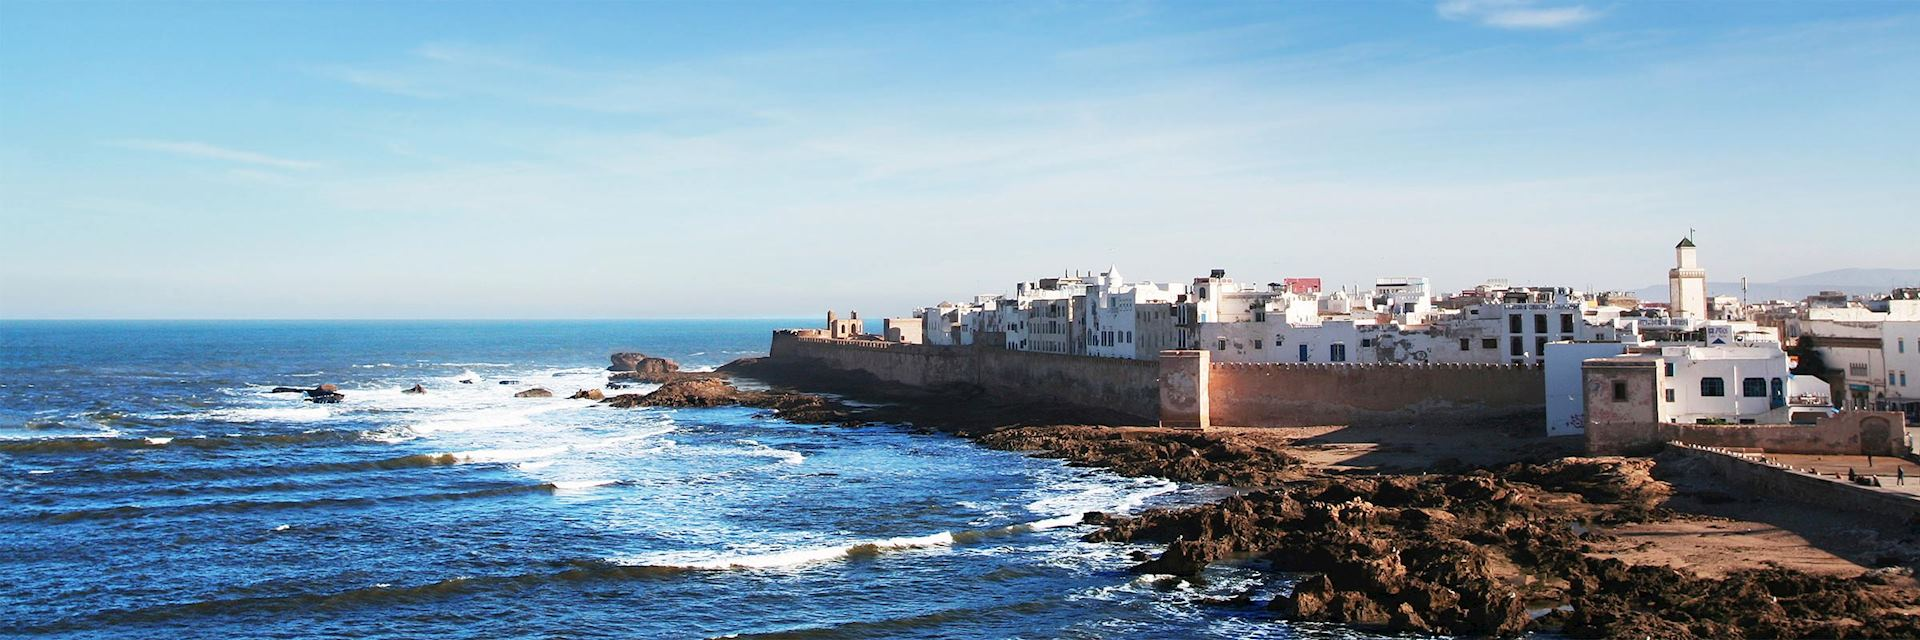 The city of Essaouira